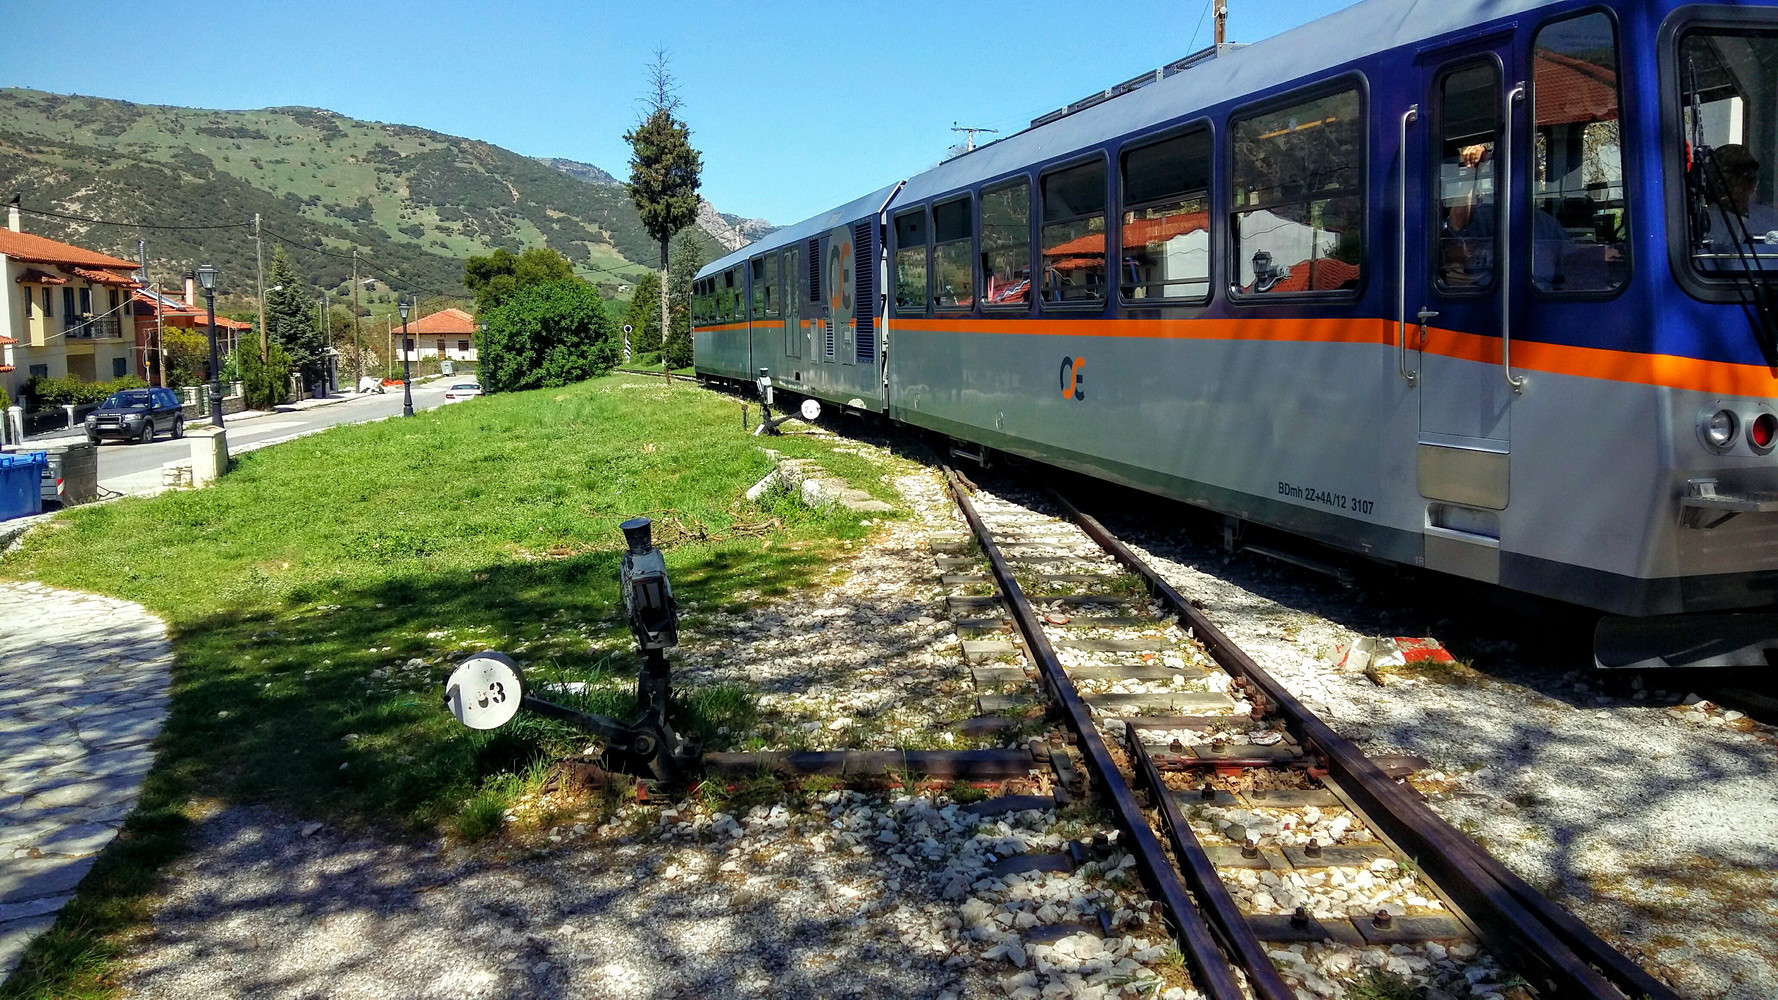 KALAVRYTA TRAIN